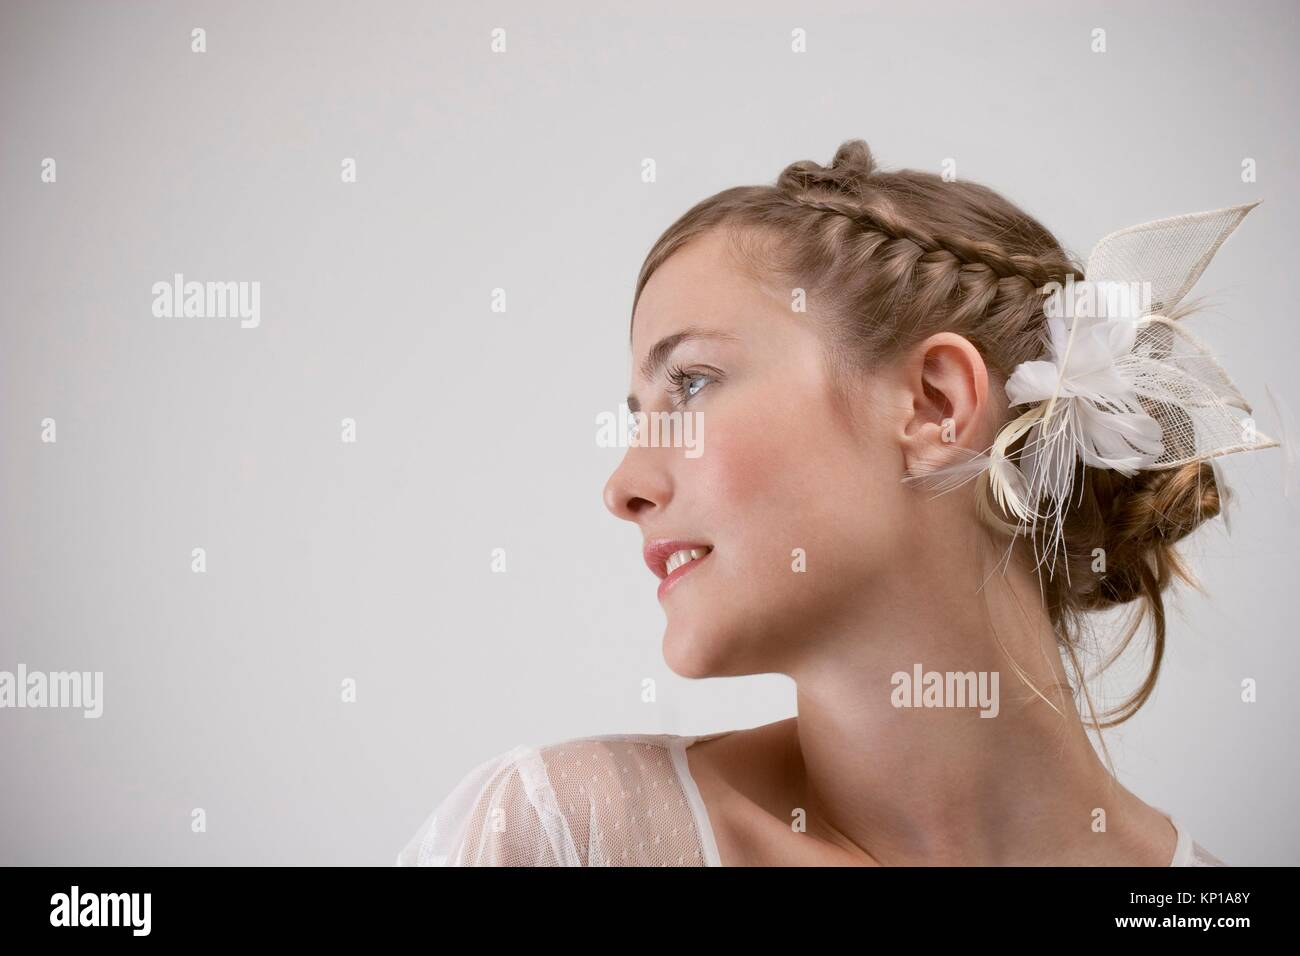 woman with a headdress - Stock Image